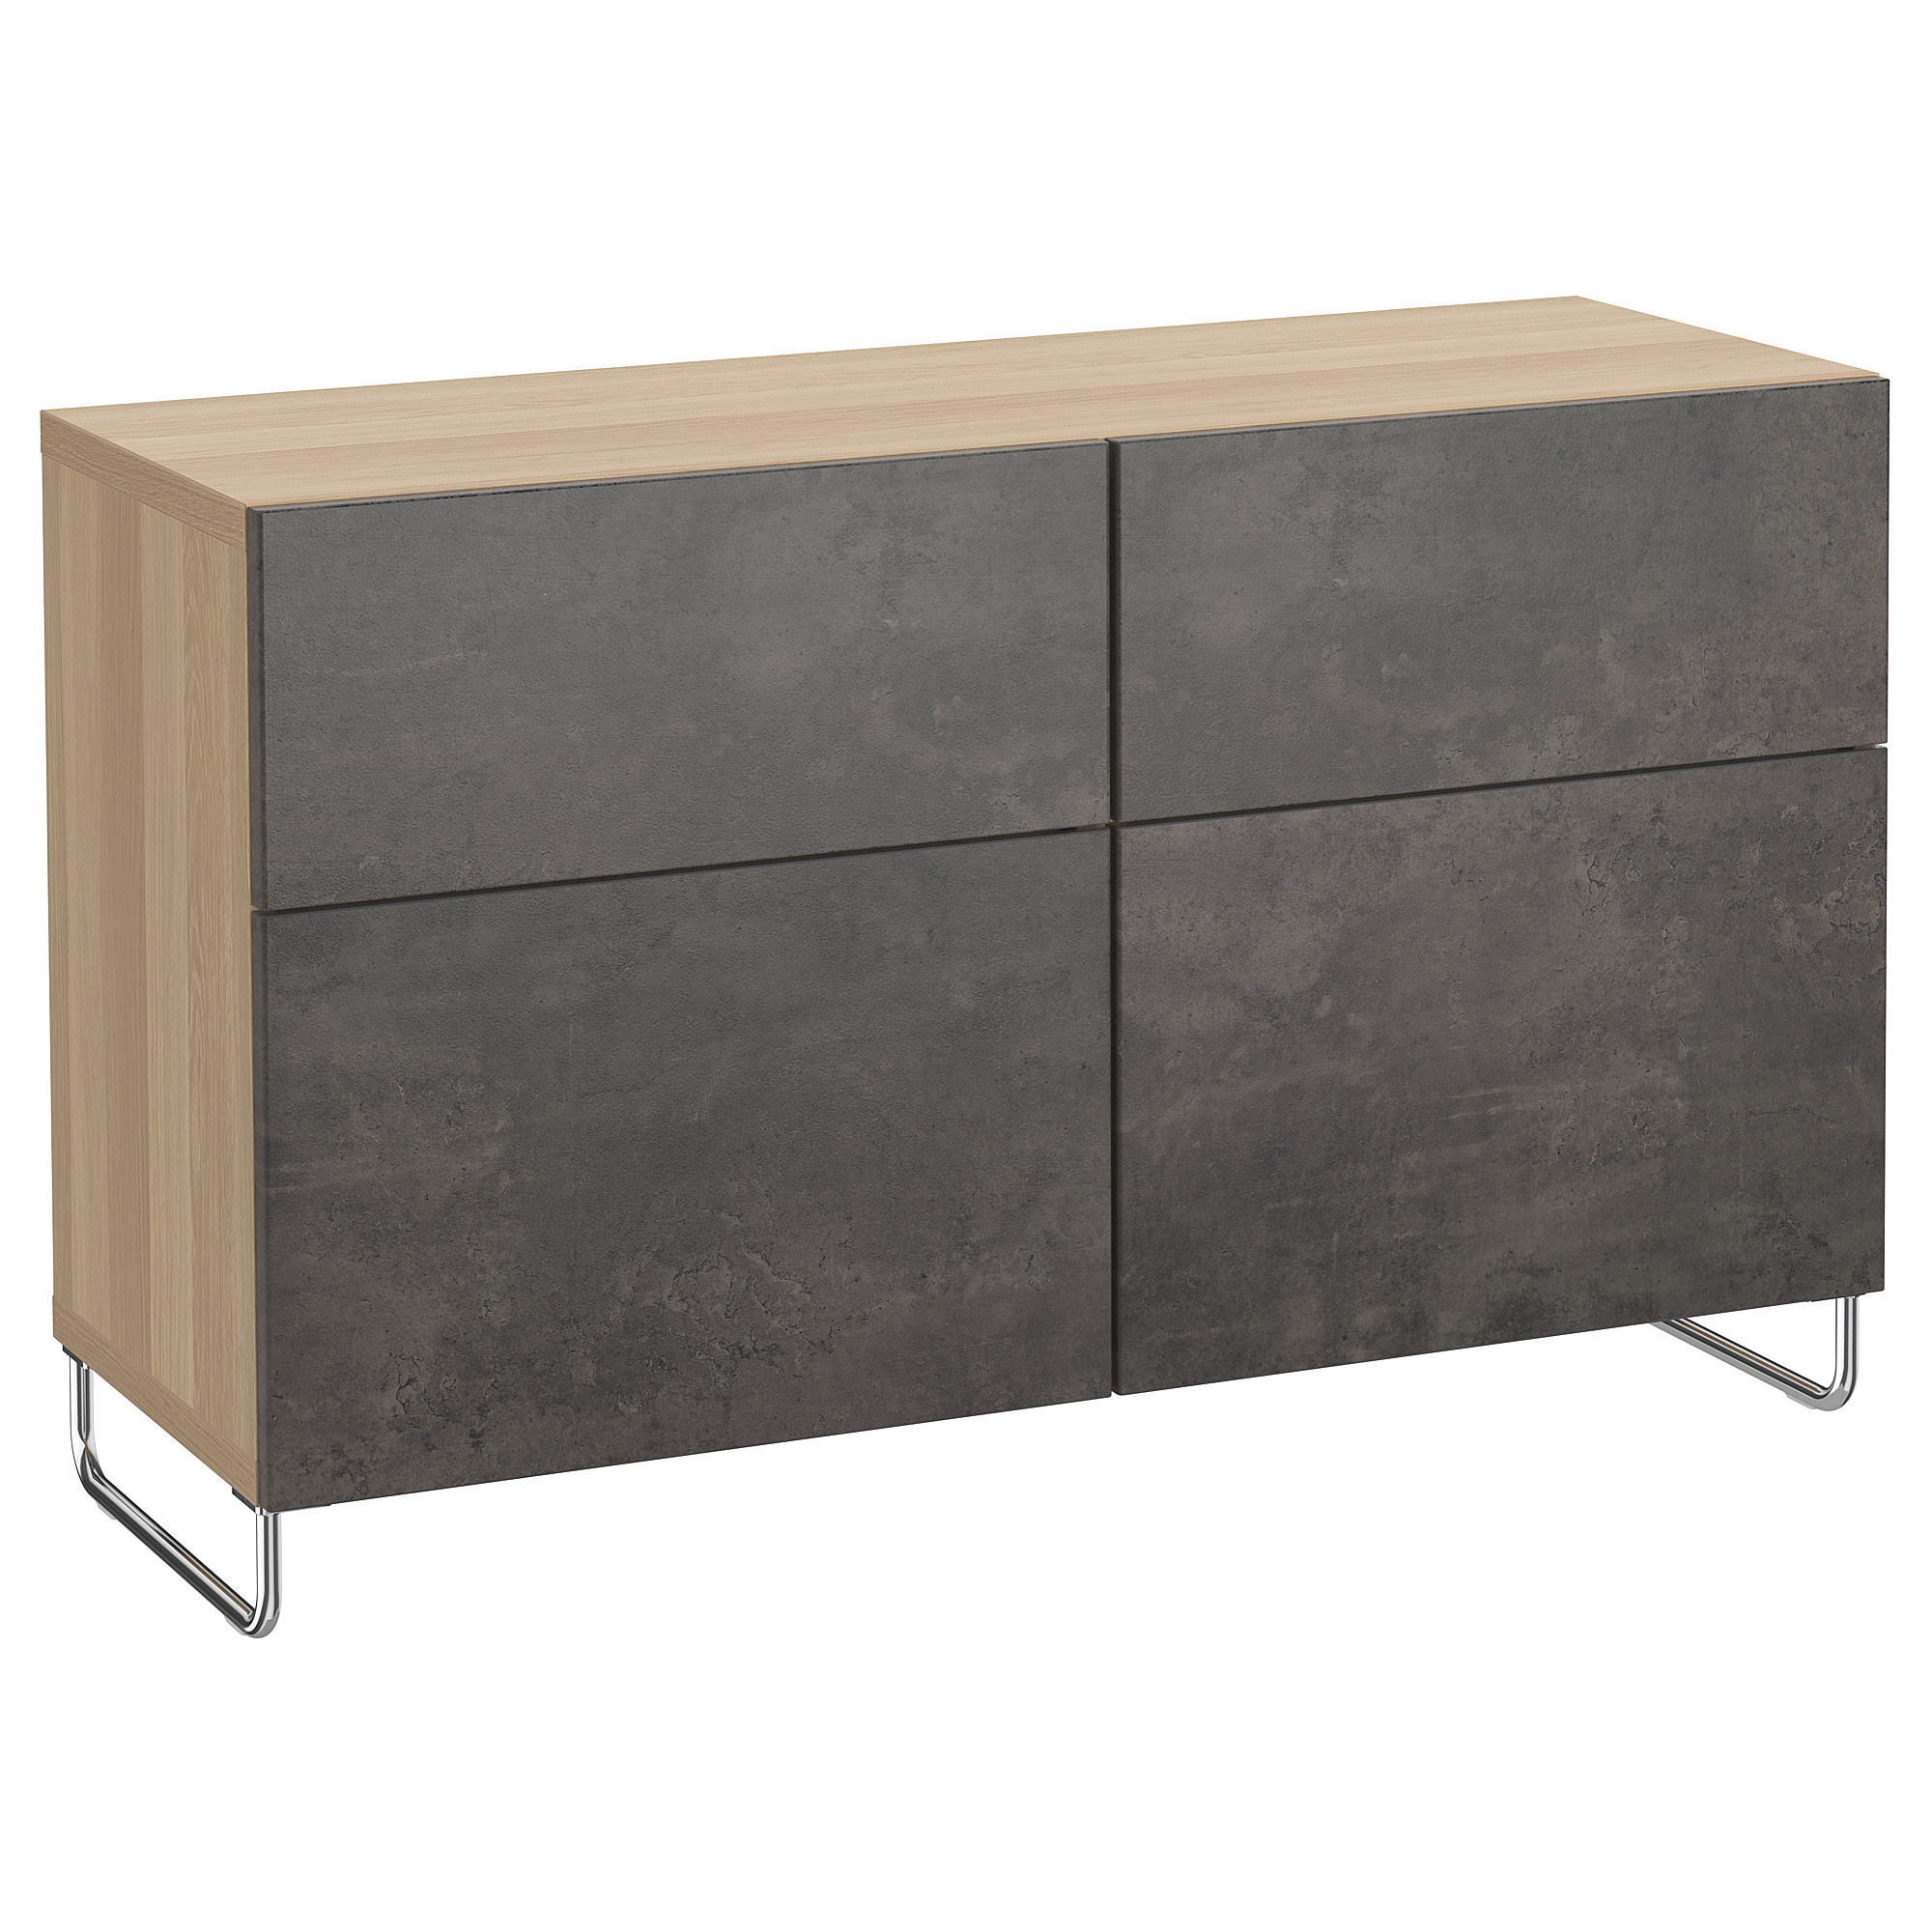 Ikea Lithuania – Shop For Furniture, Lighting, Home Accessories & More Within Preferred 4 Door Wood Squares Sideboards (View 9 of 20)